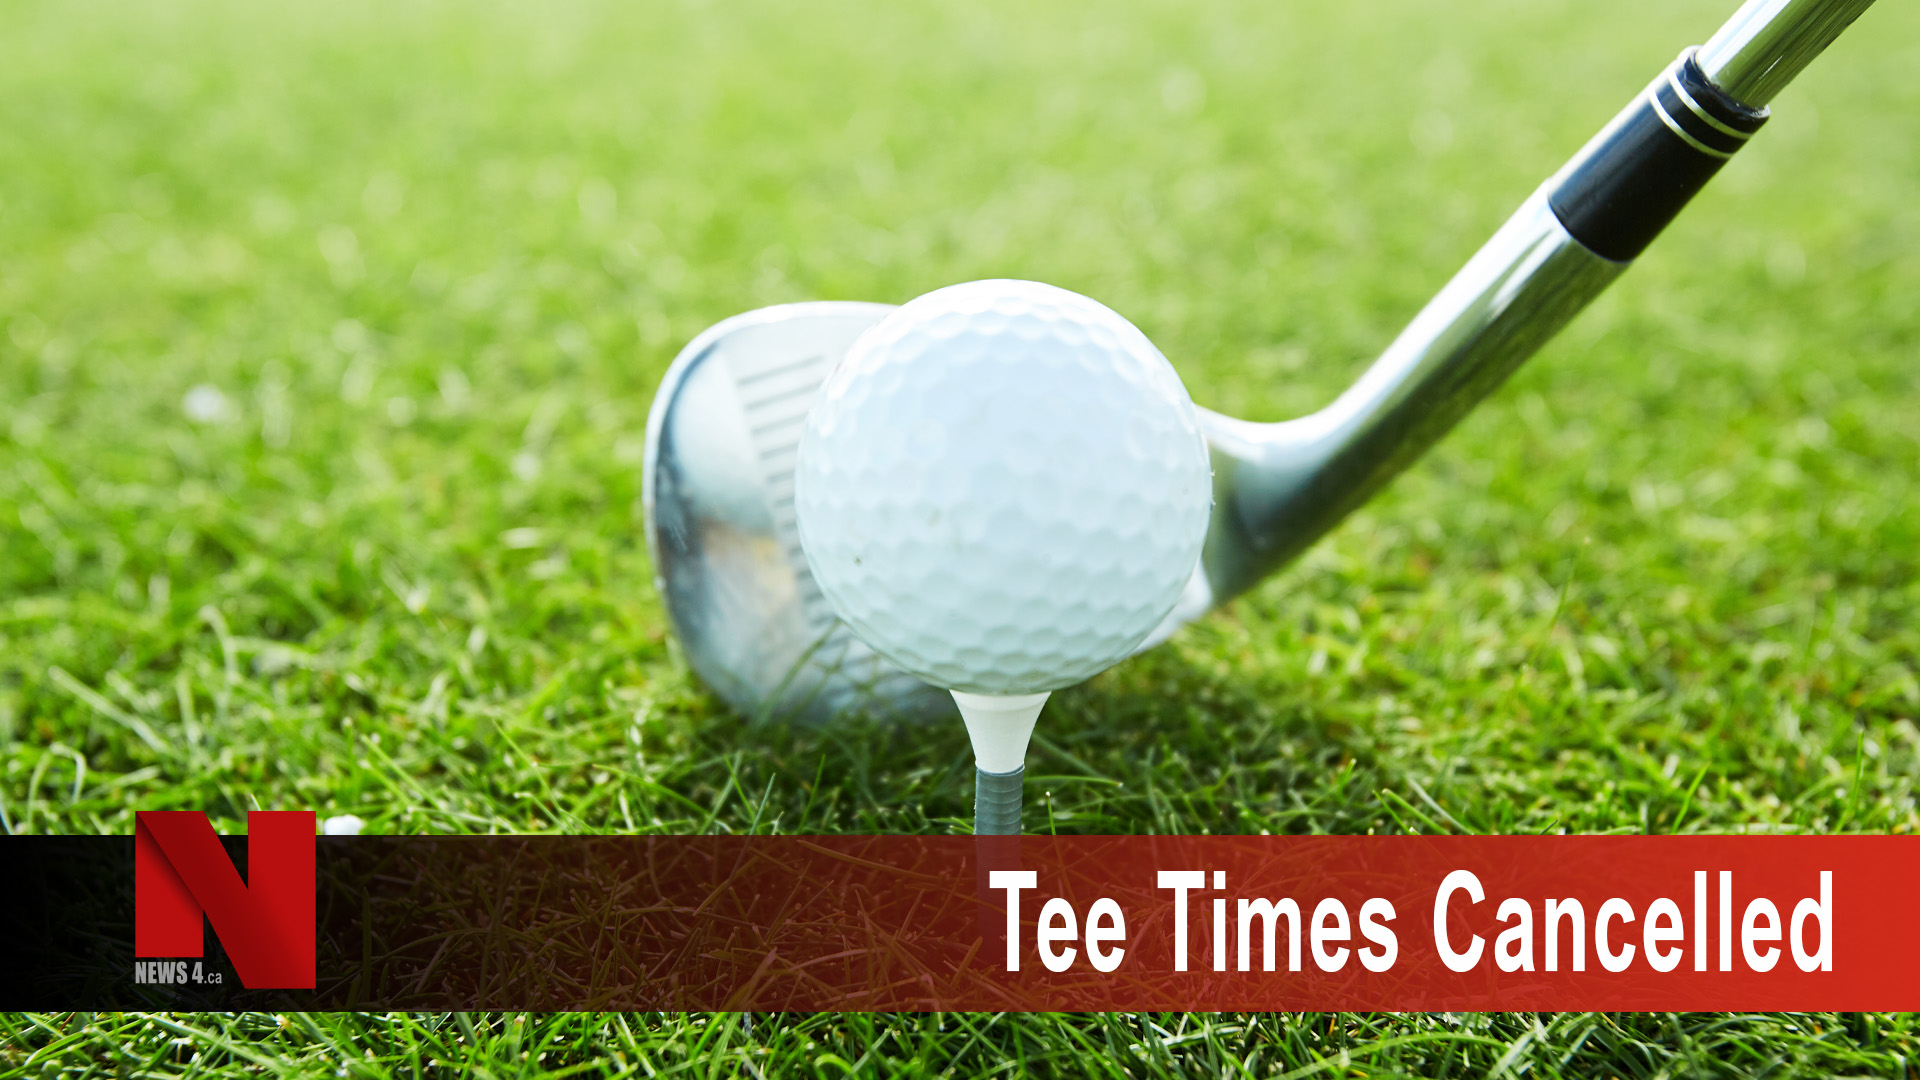 Tee-Time cancelled